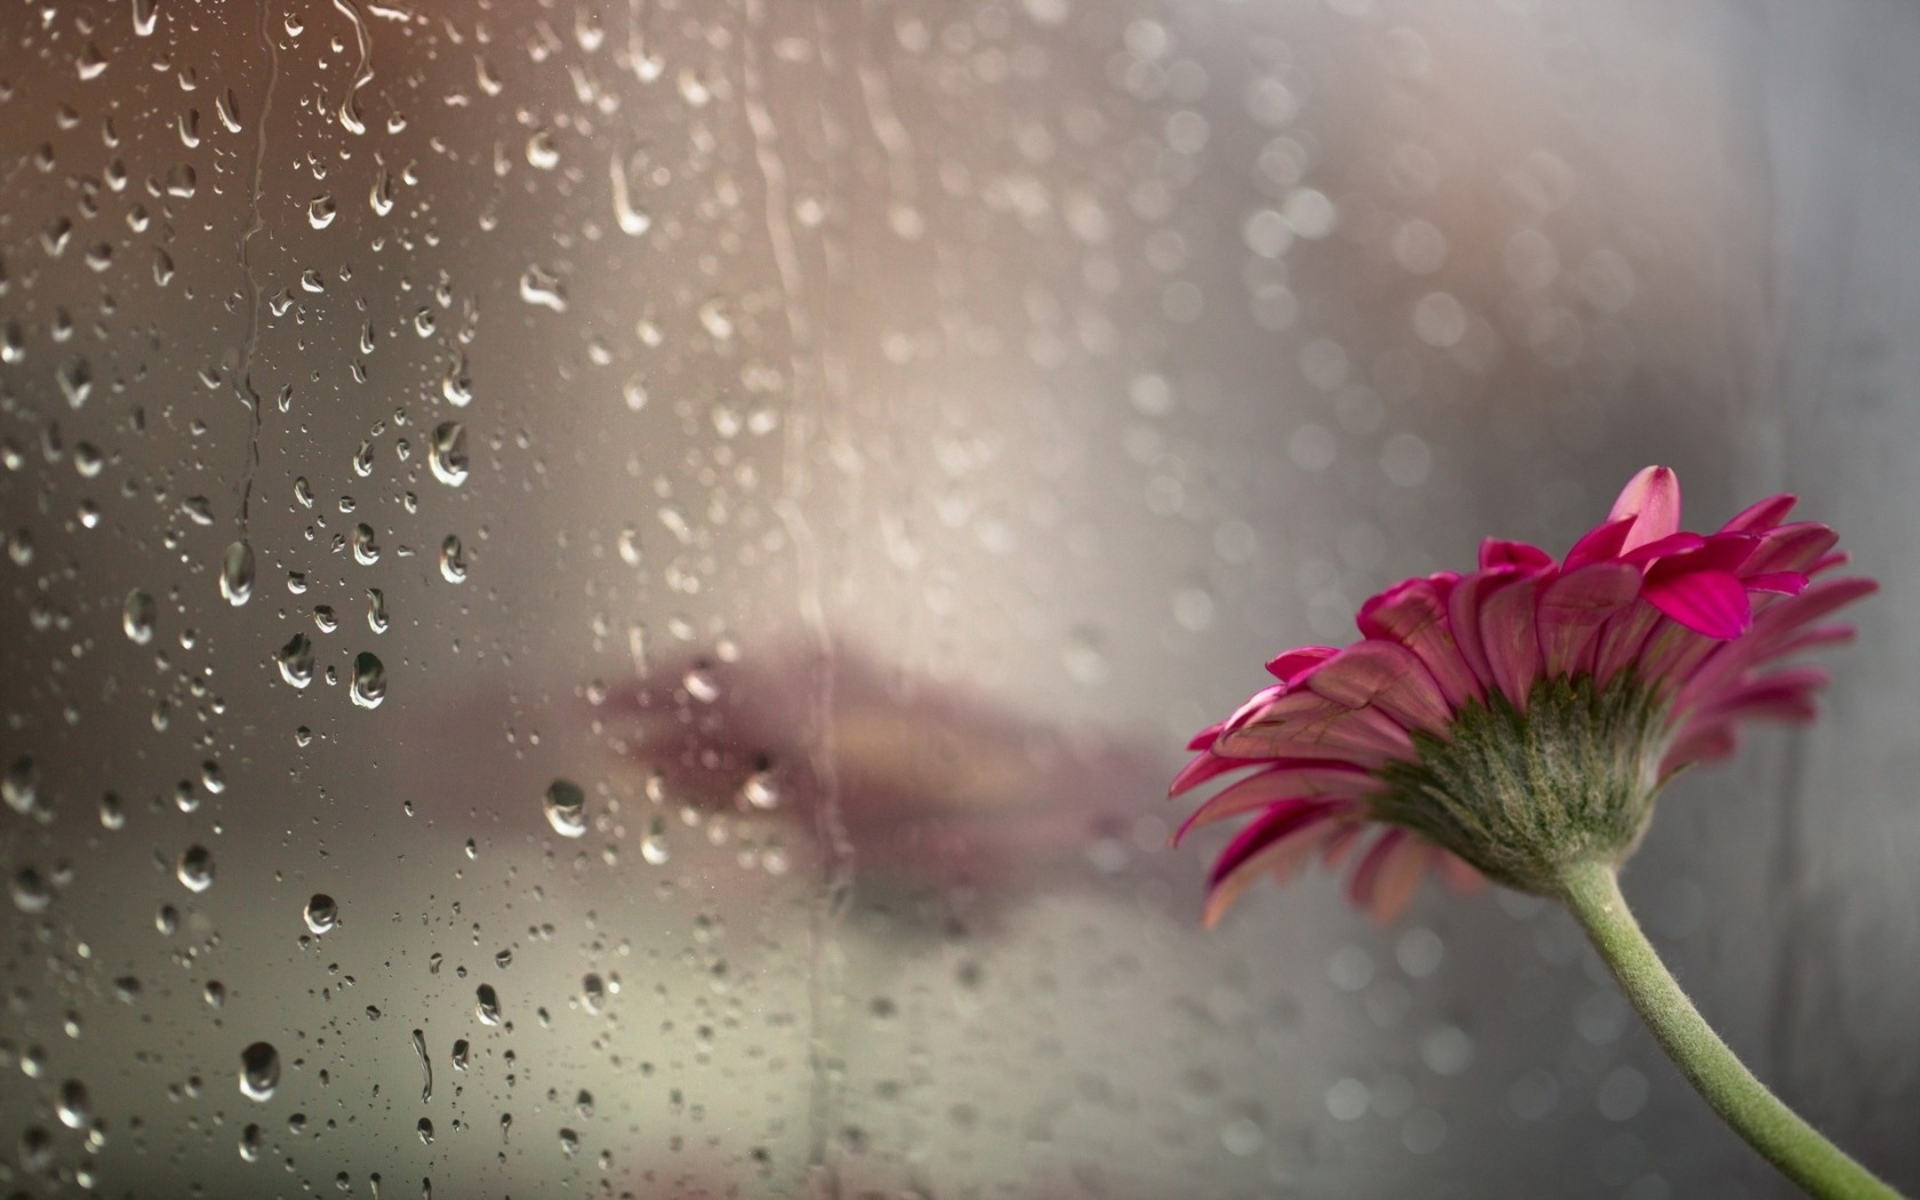 drops flower glass rain bokeh wallpaper background 1920x1200